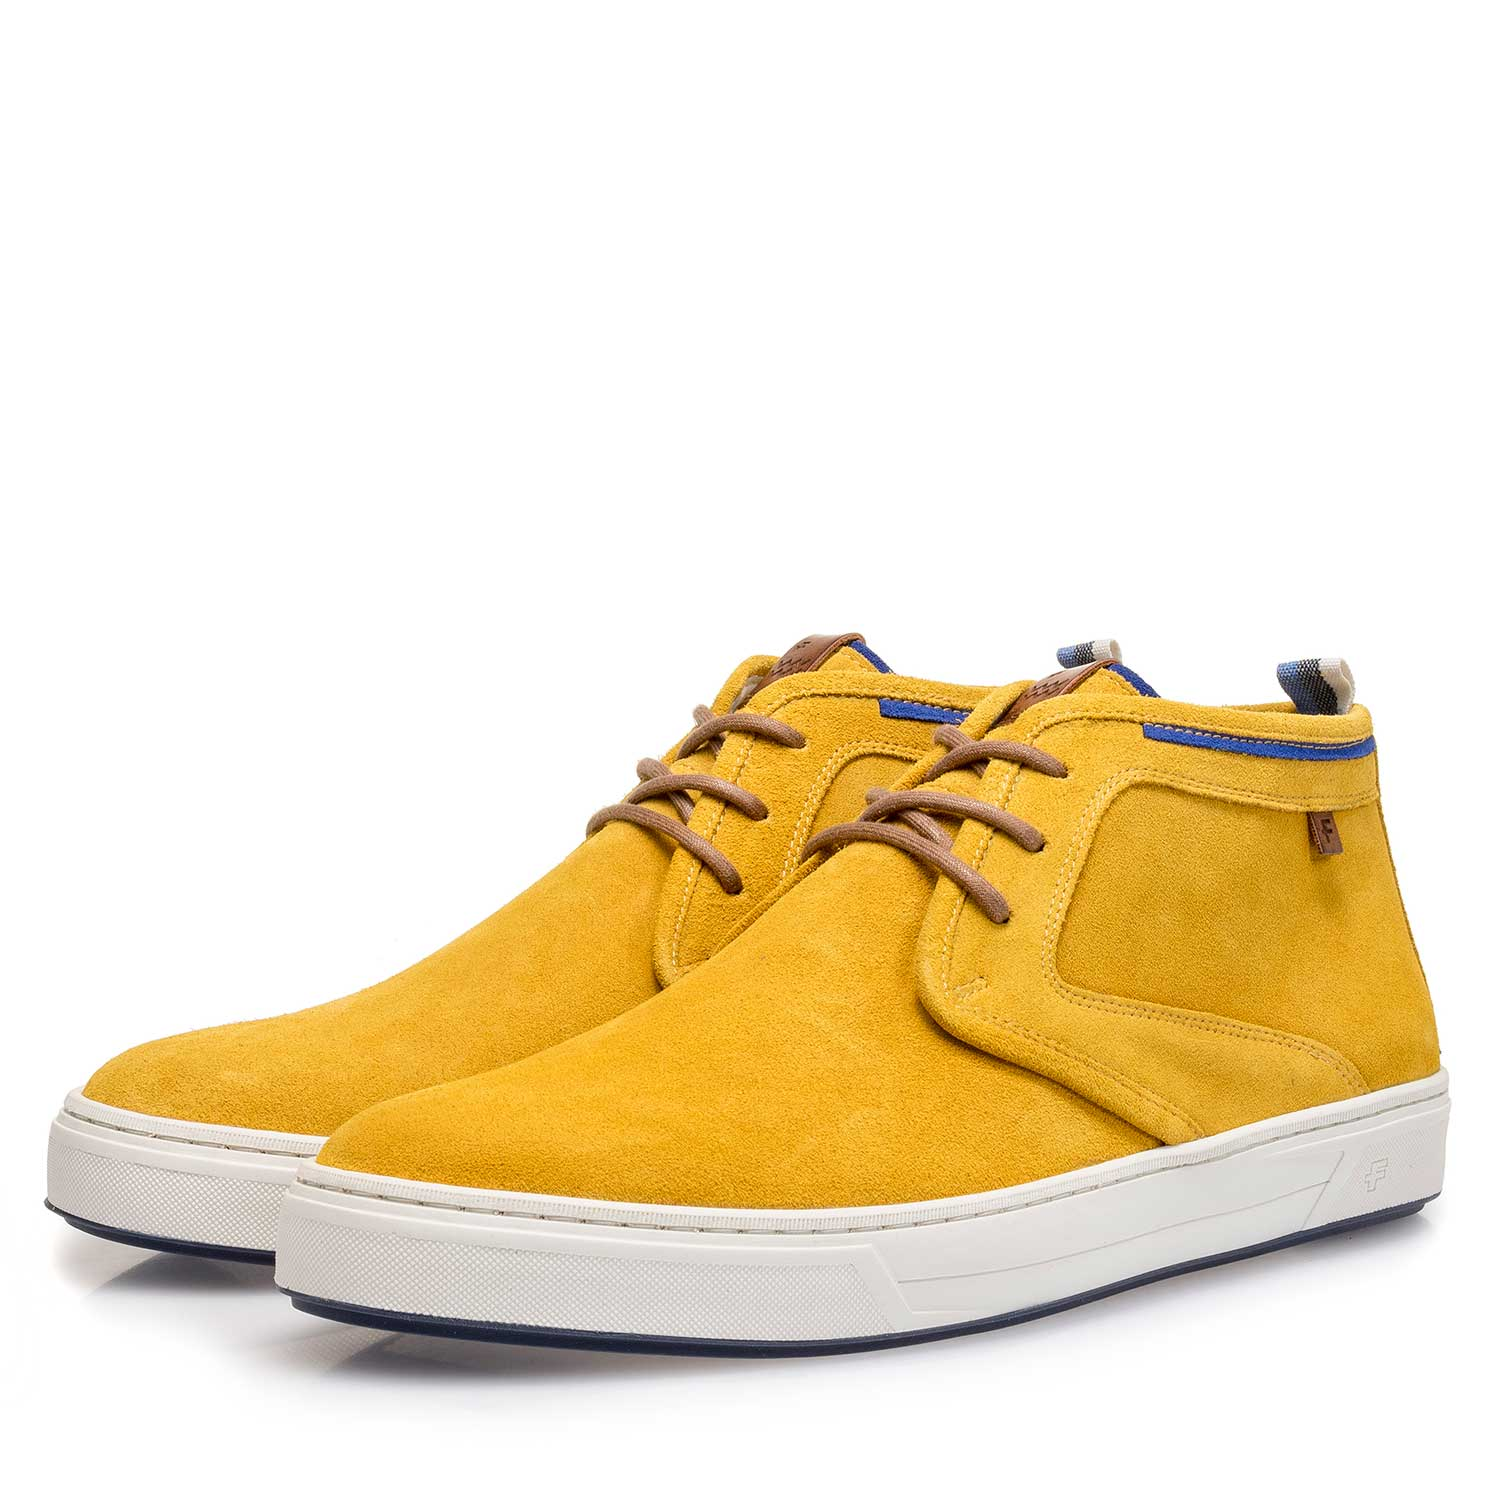 10466/04 - Mustard yellow washed suede leather lace shoe